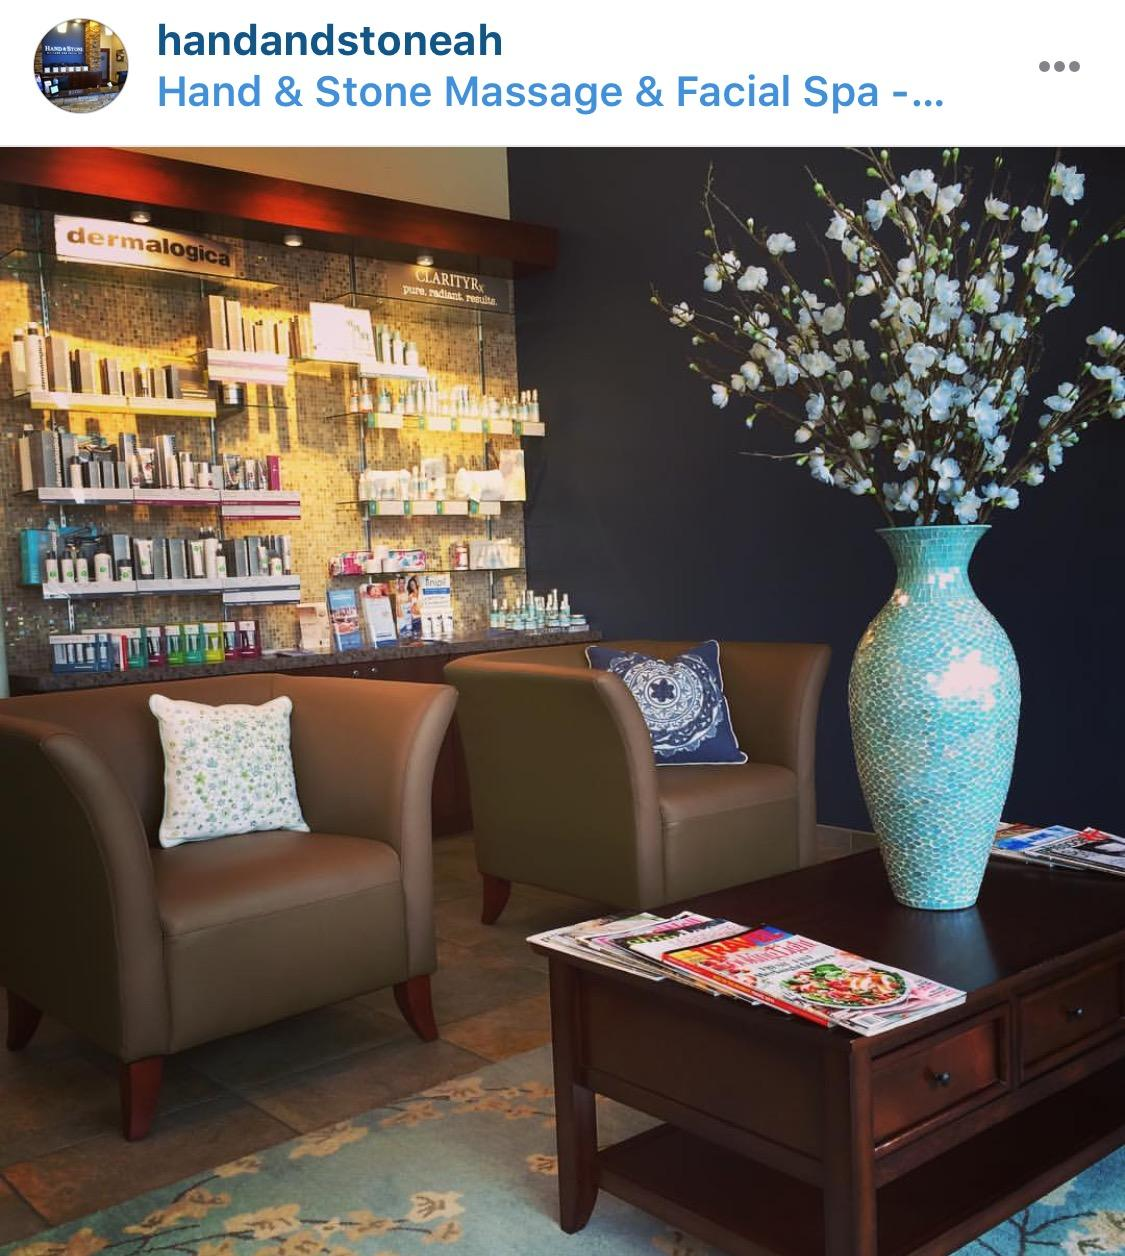 Hand & Stone RM is on Instagram at Hand and Stone